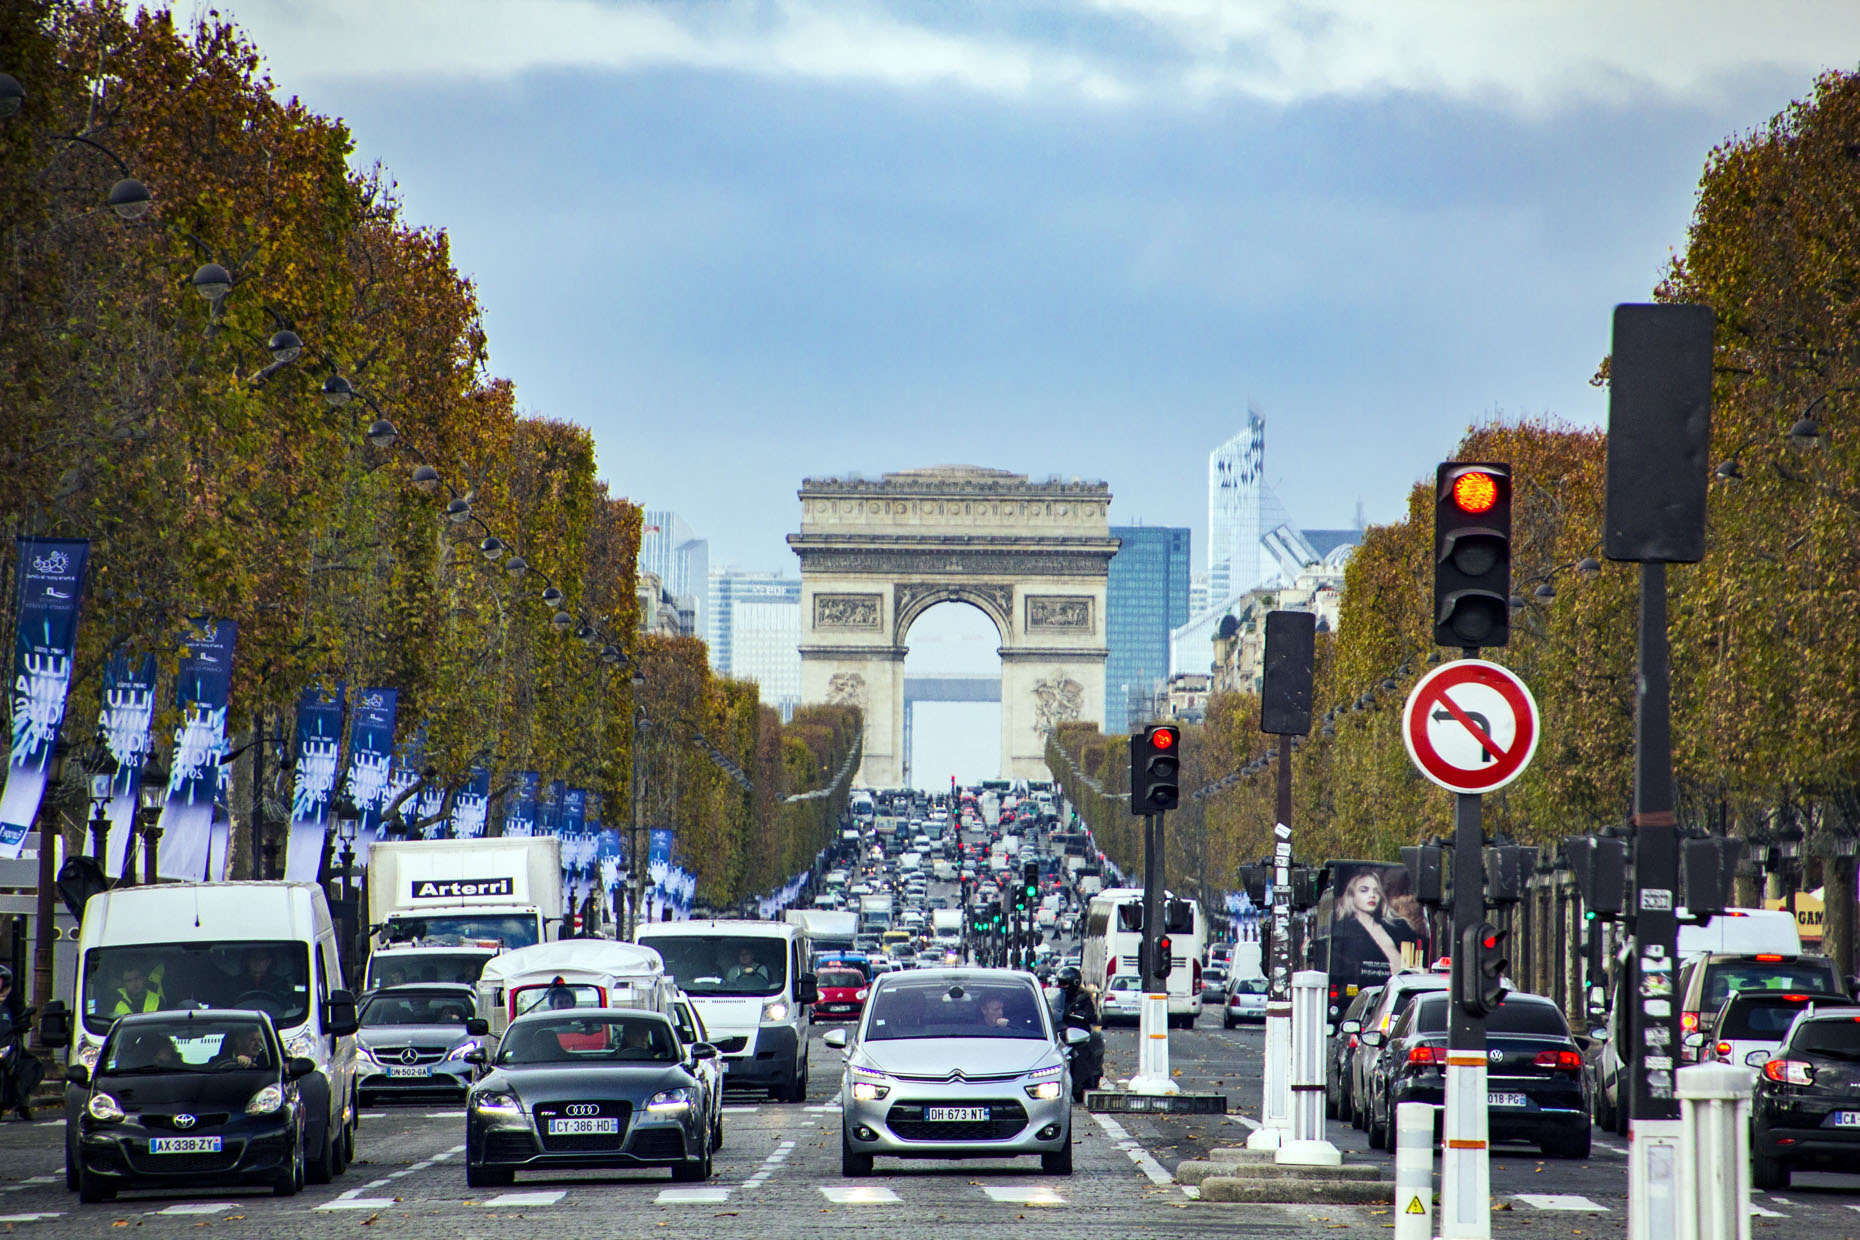 France_Paris_IMG_2985-e_webuse.jpg